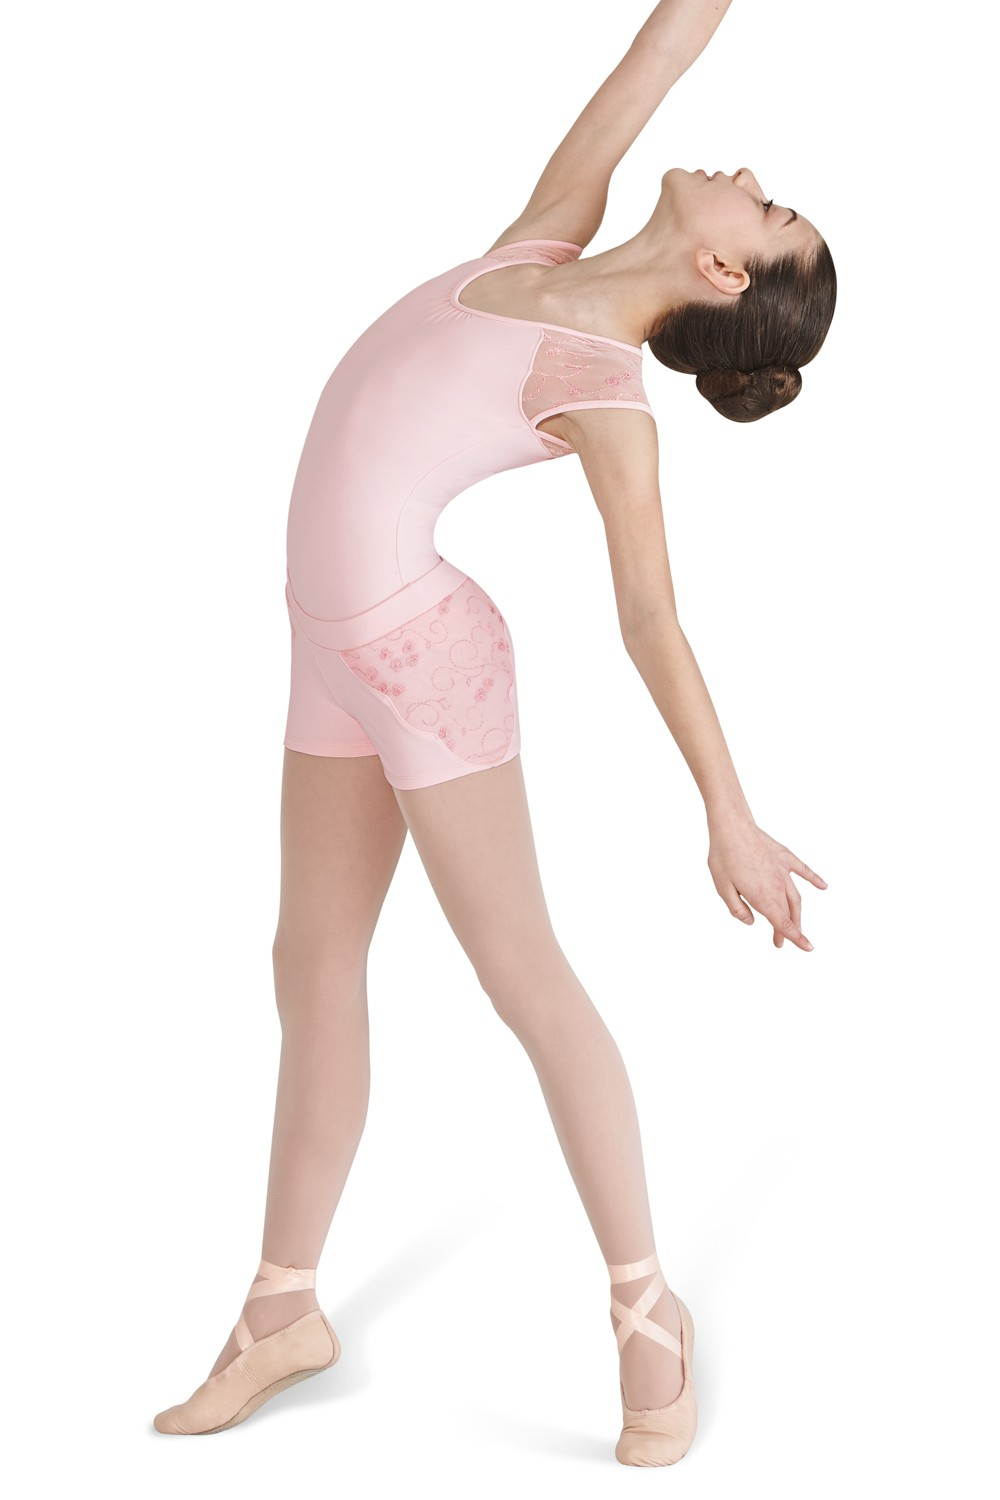 Crinole Children's Dance Shorts